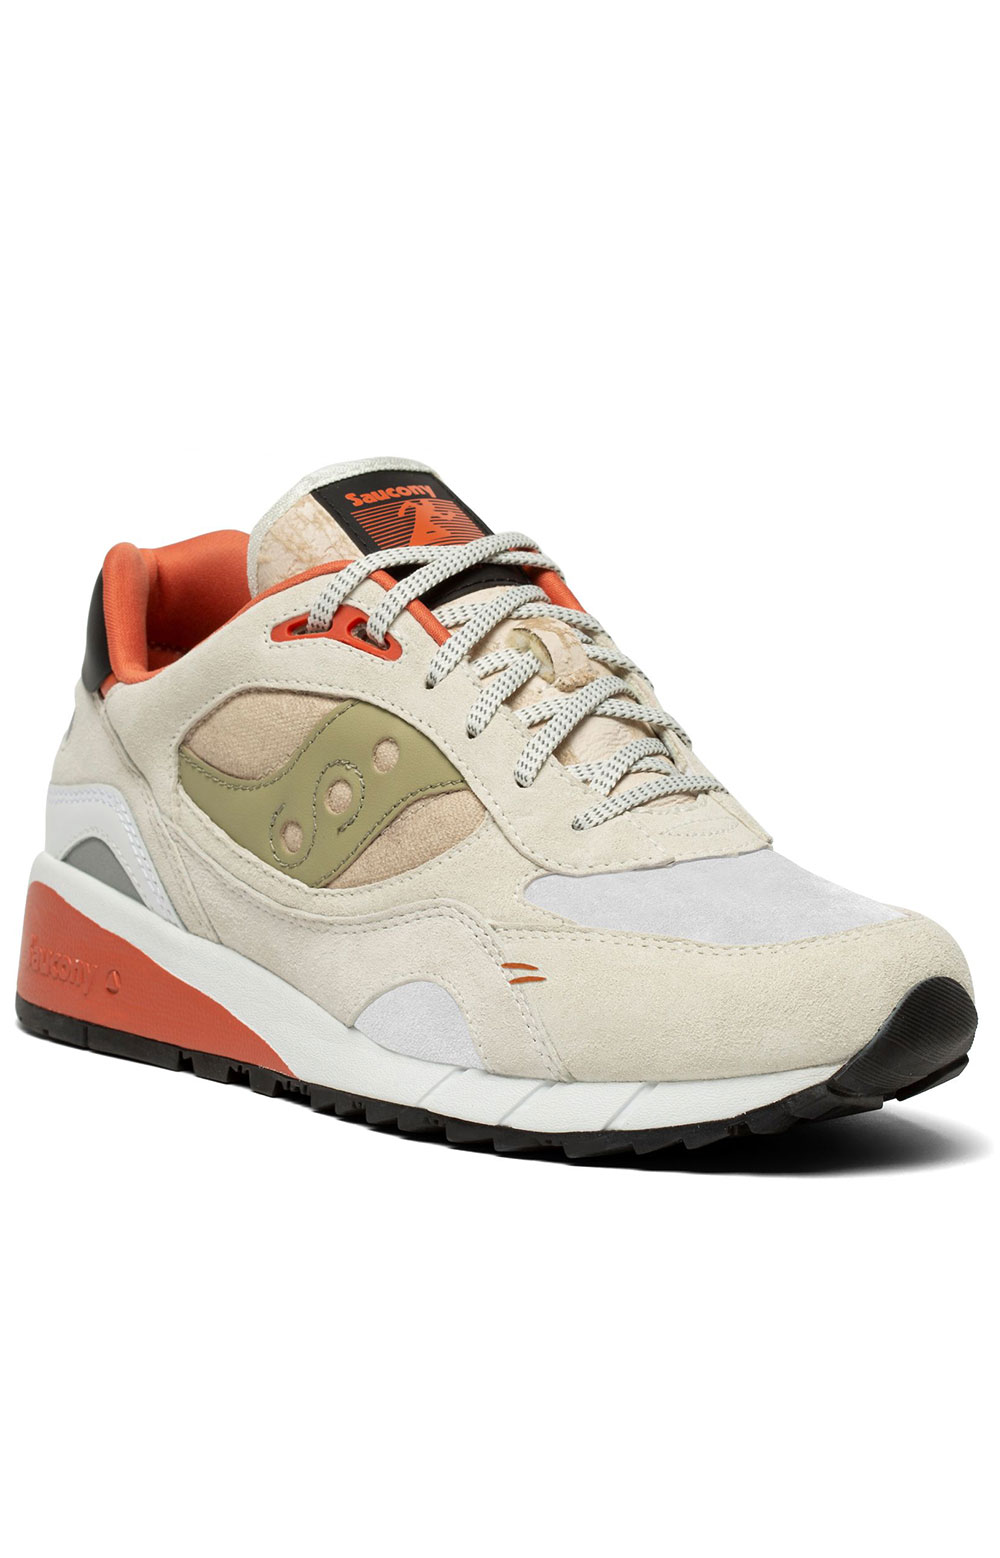 (S70587-3) Shadow 6000 Shoes - White/Clay 5